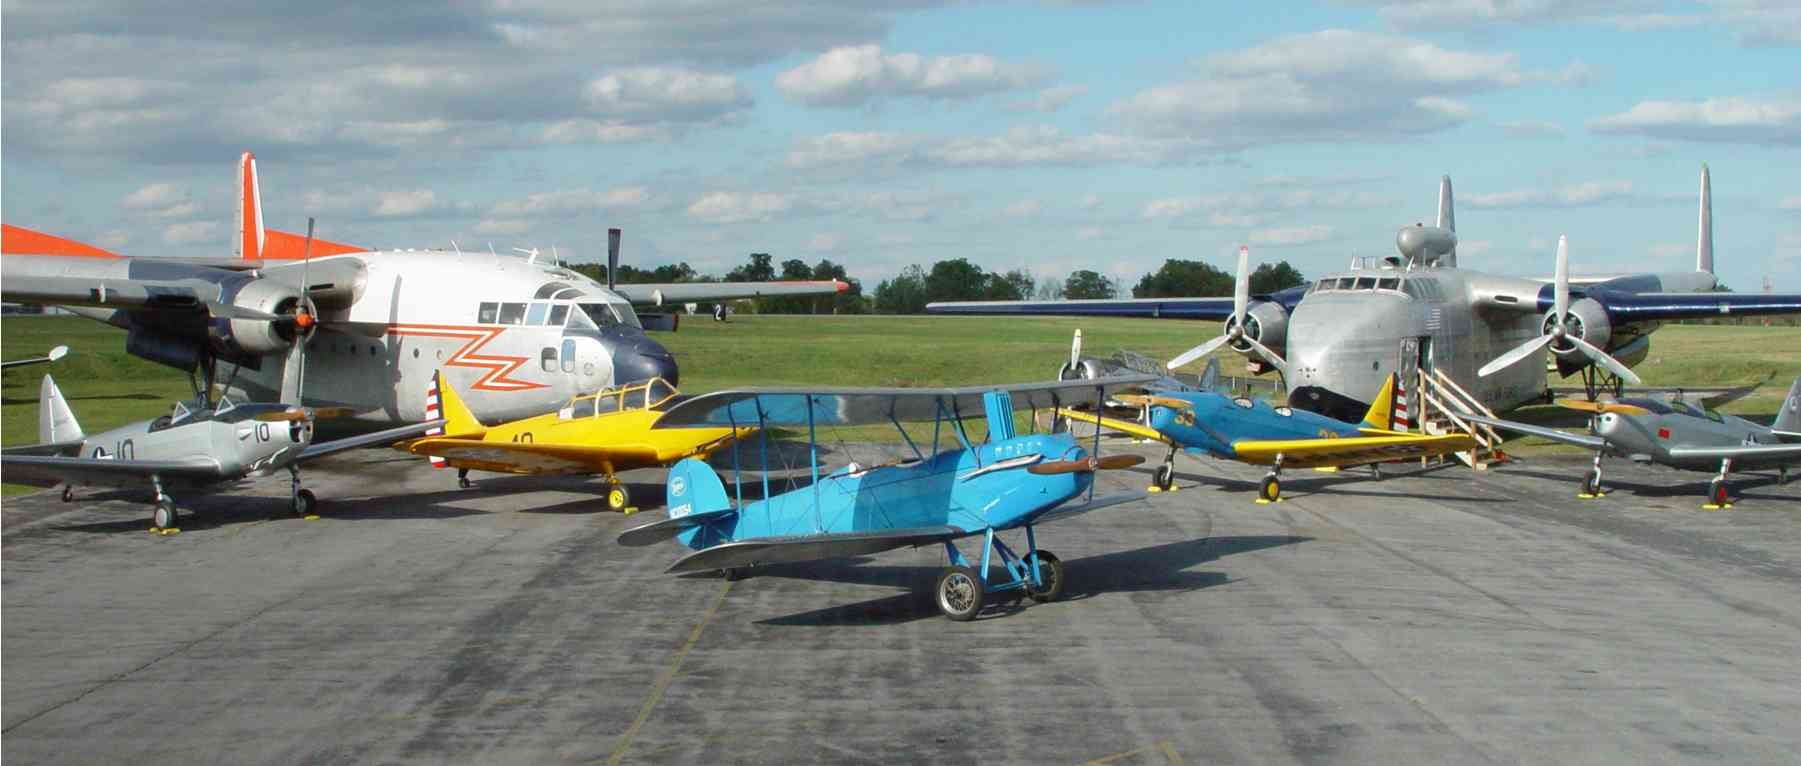 Aircraft Collection of Hagerstown Aviation Museum